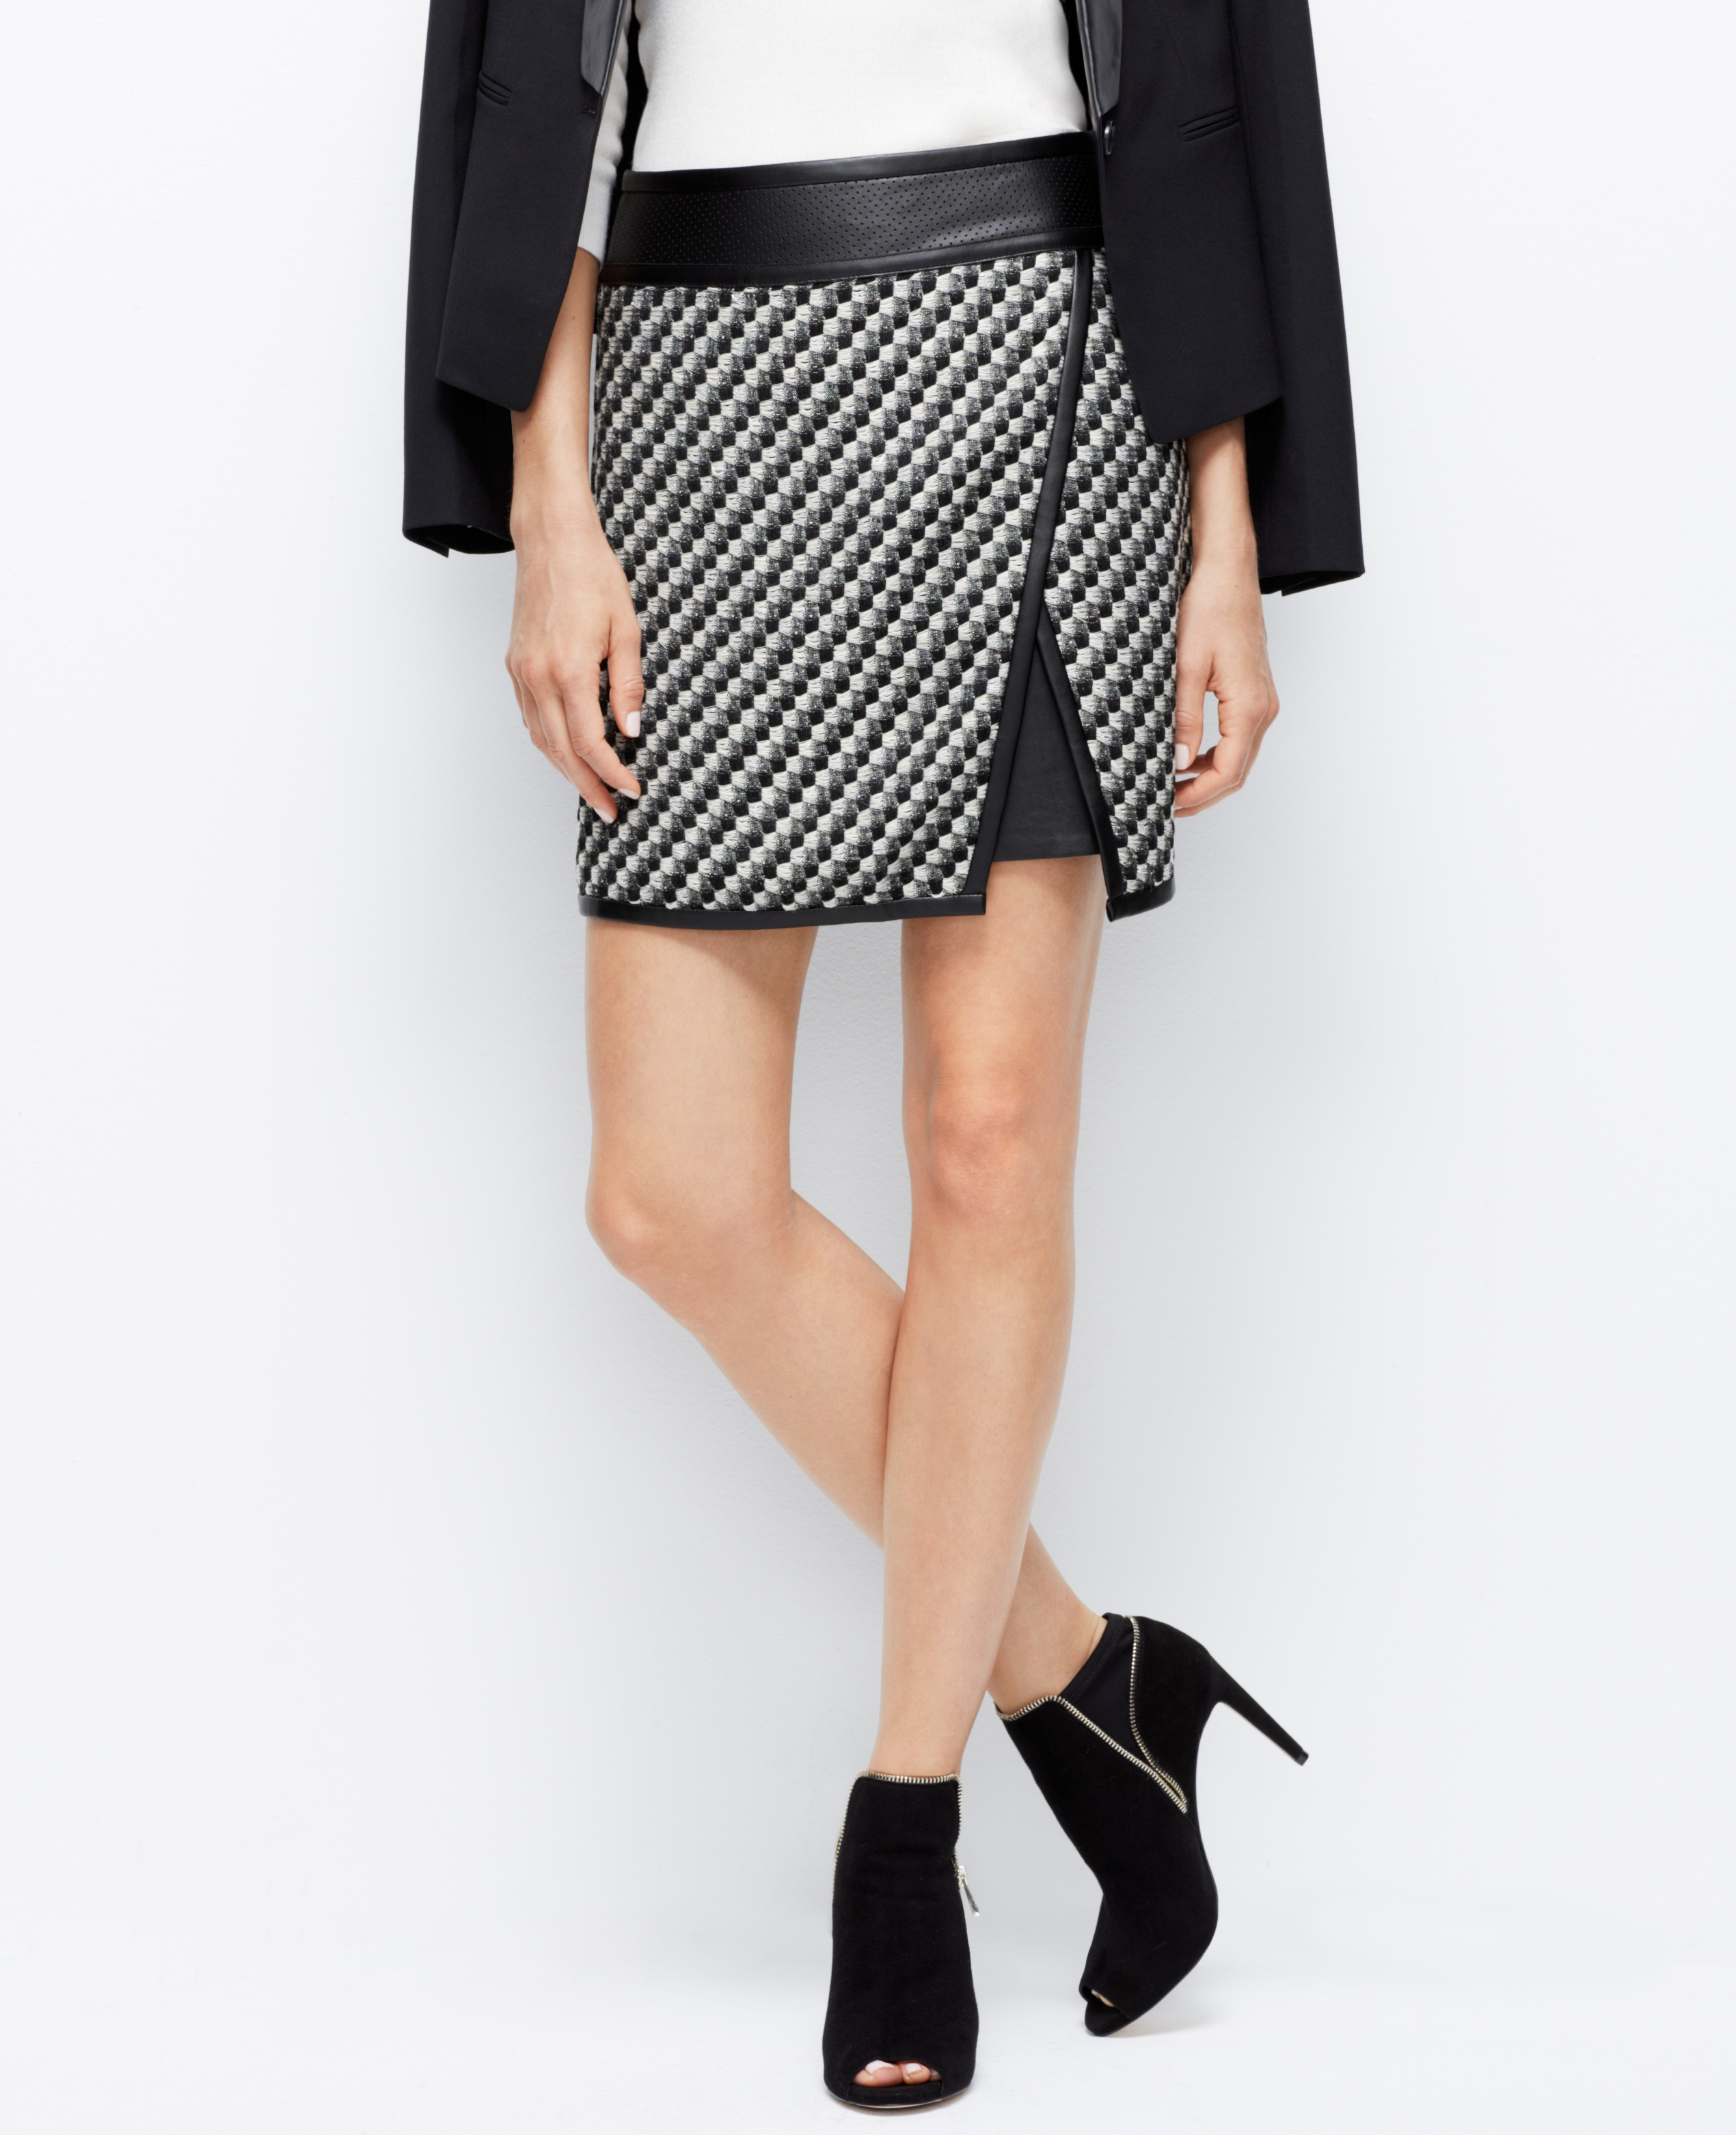 Ann taylor Petite Faux Leather Trim Tweed Skirt in Black | Lyst